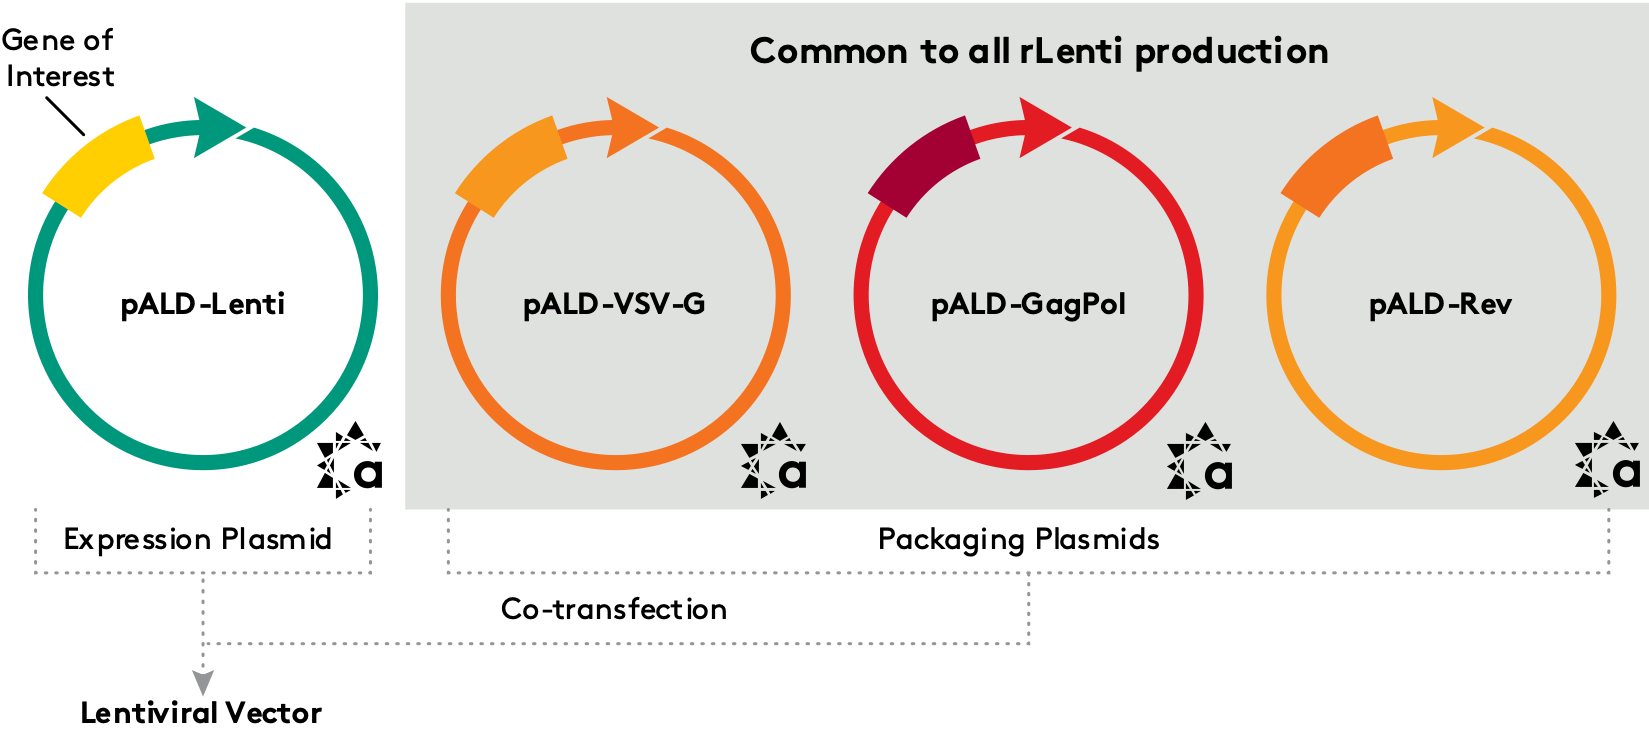 pALD-Lenti System - Common to all rLenti production